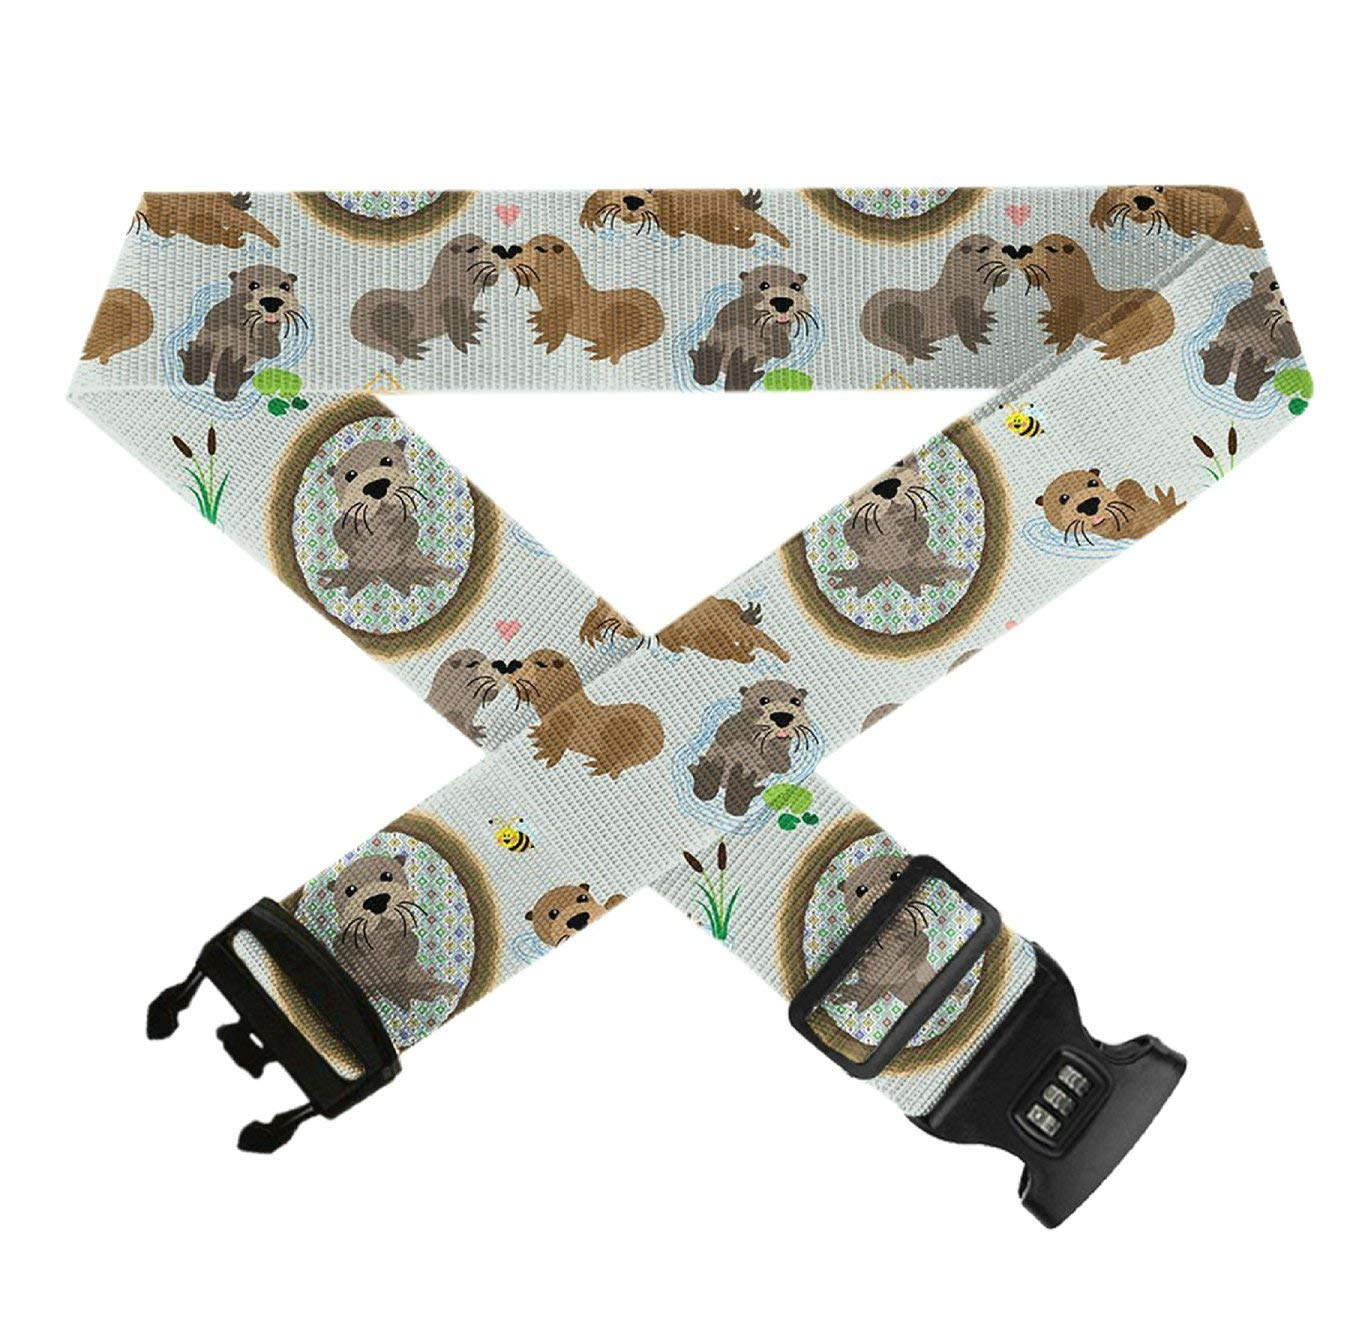 Otters,Heavy Duty Bag Straps 3 Dial Approved Lock for Extra Luggage//Travel//Business GLORY ART Suitcase Belt Straps 1 Pack